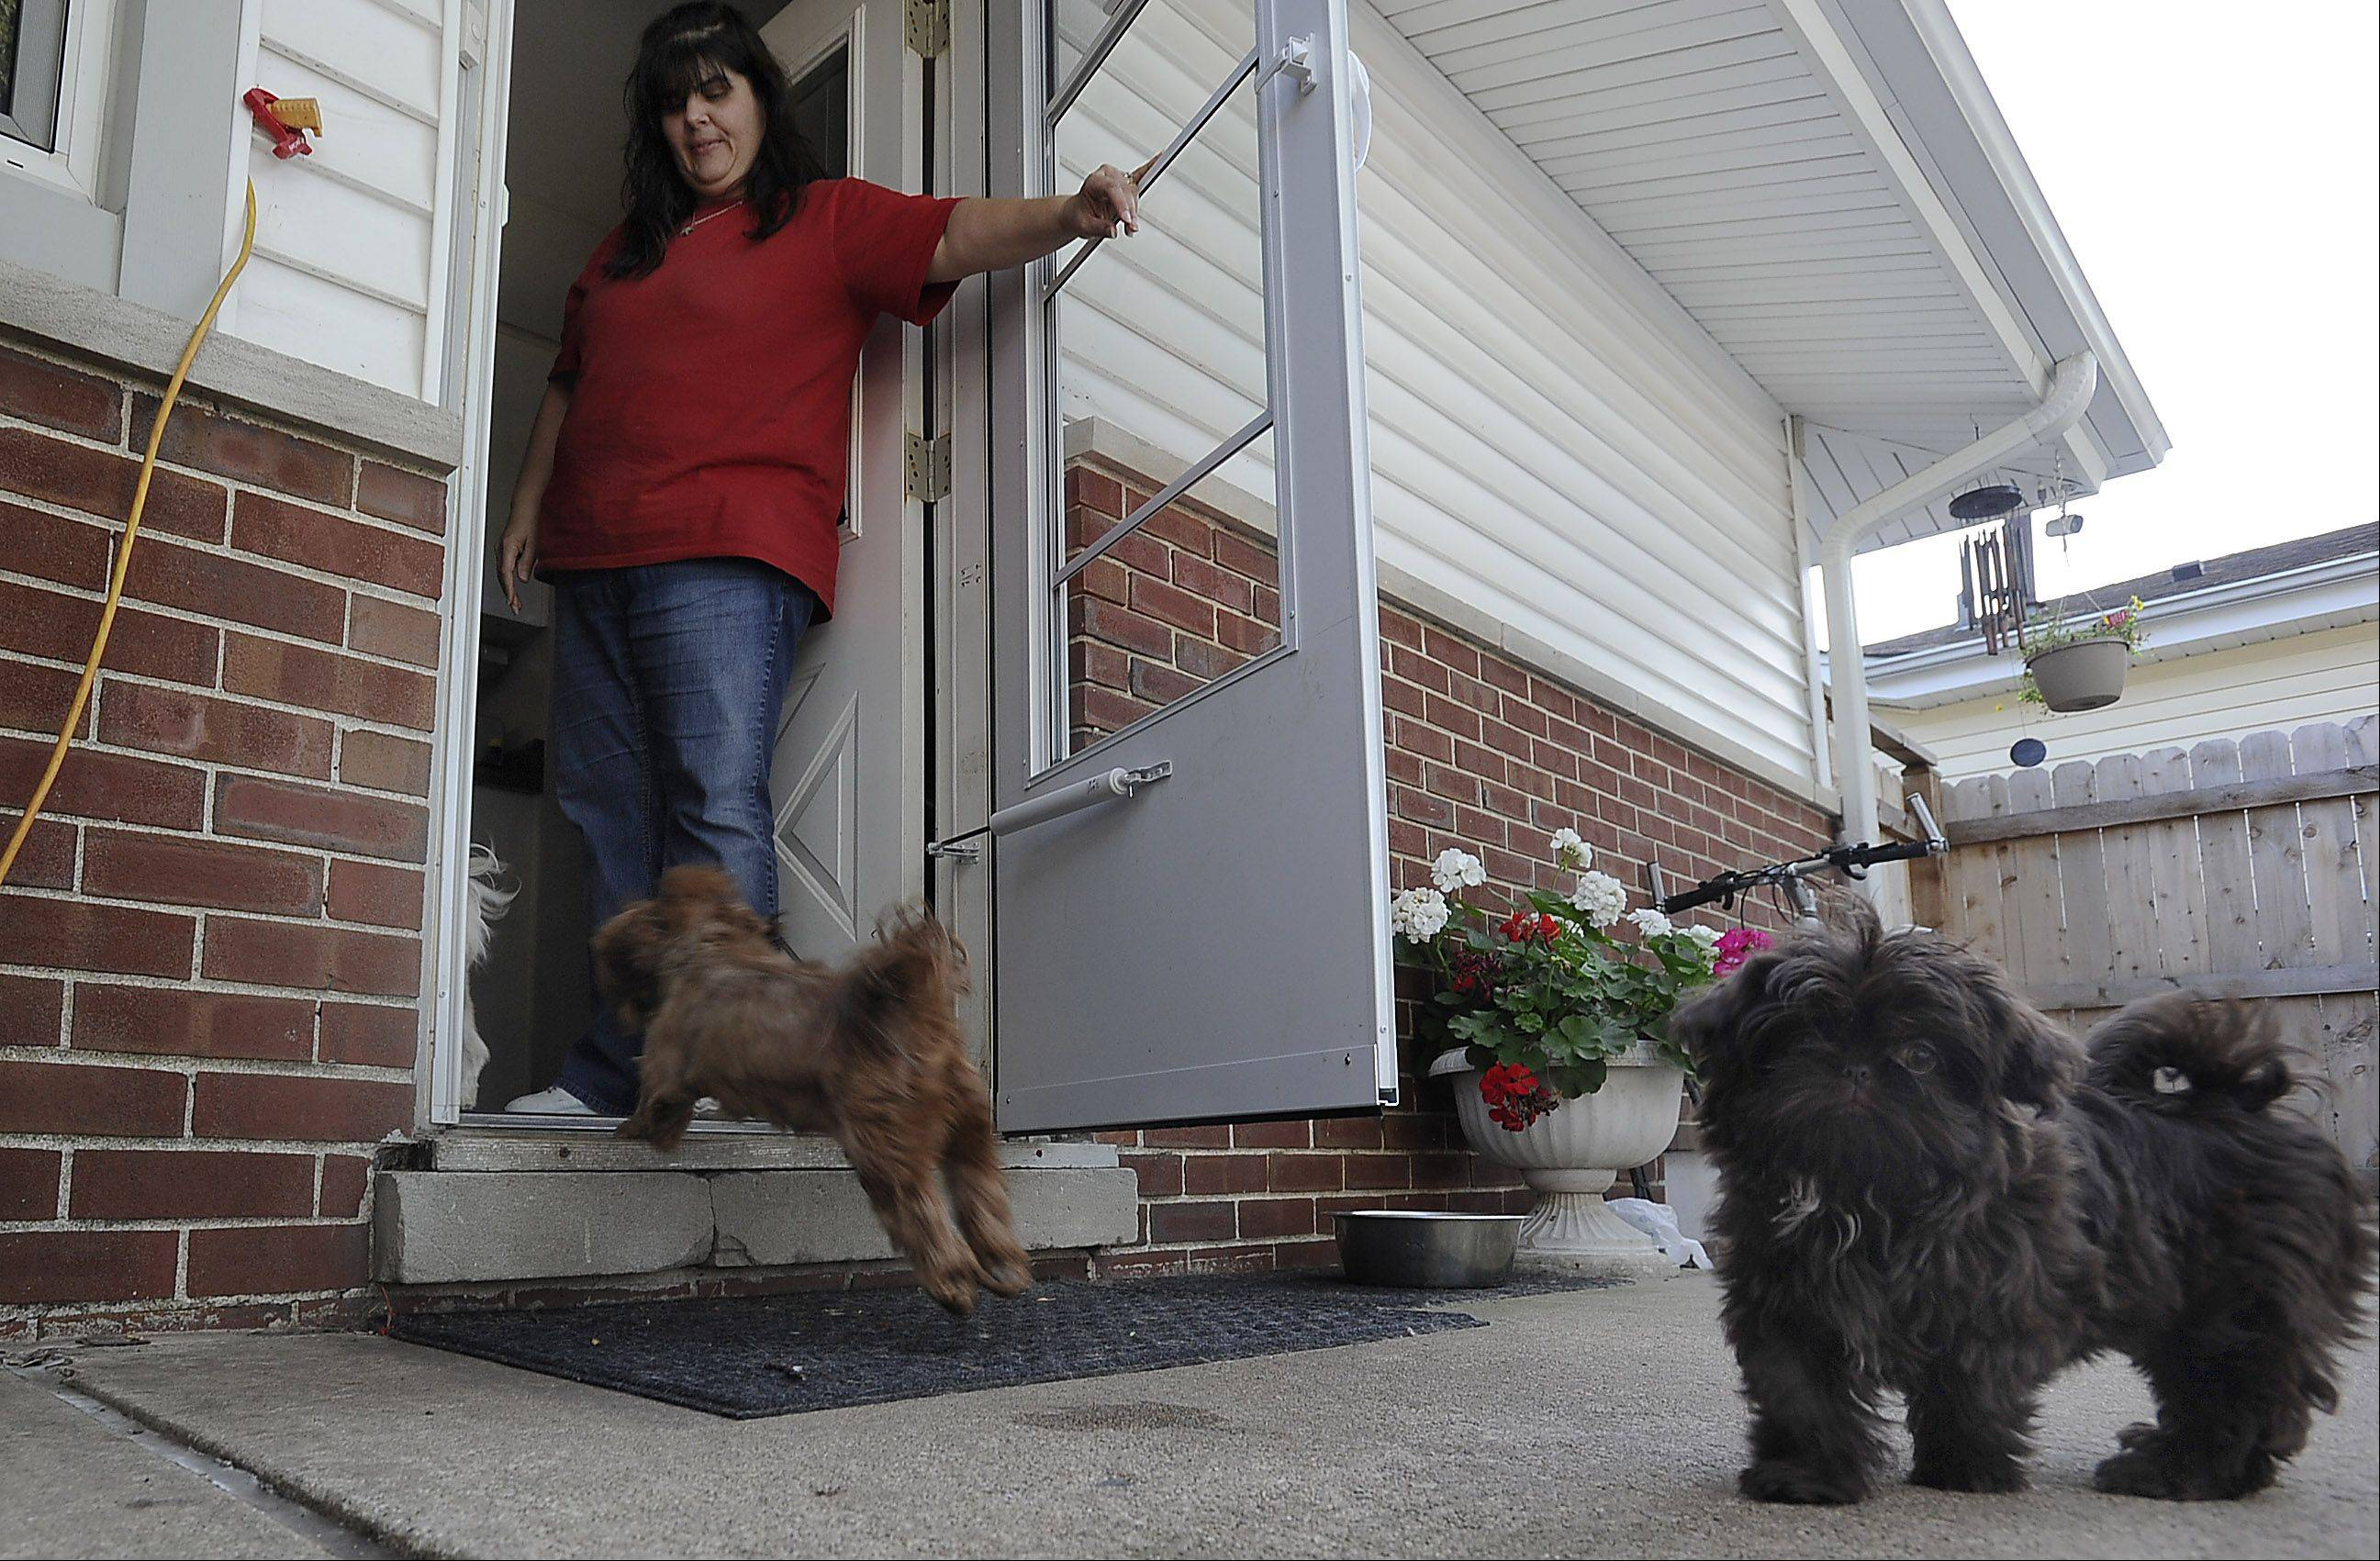 Cindy Weik of Elk Grove Village lets her dogs into the house where she breeds them. A neighbor's complaint has landed Weik in court.